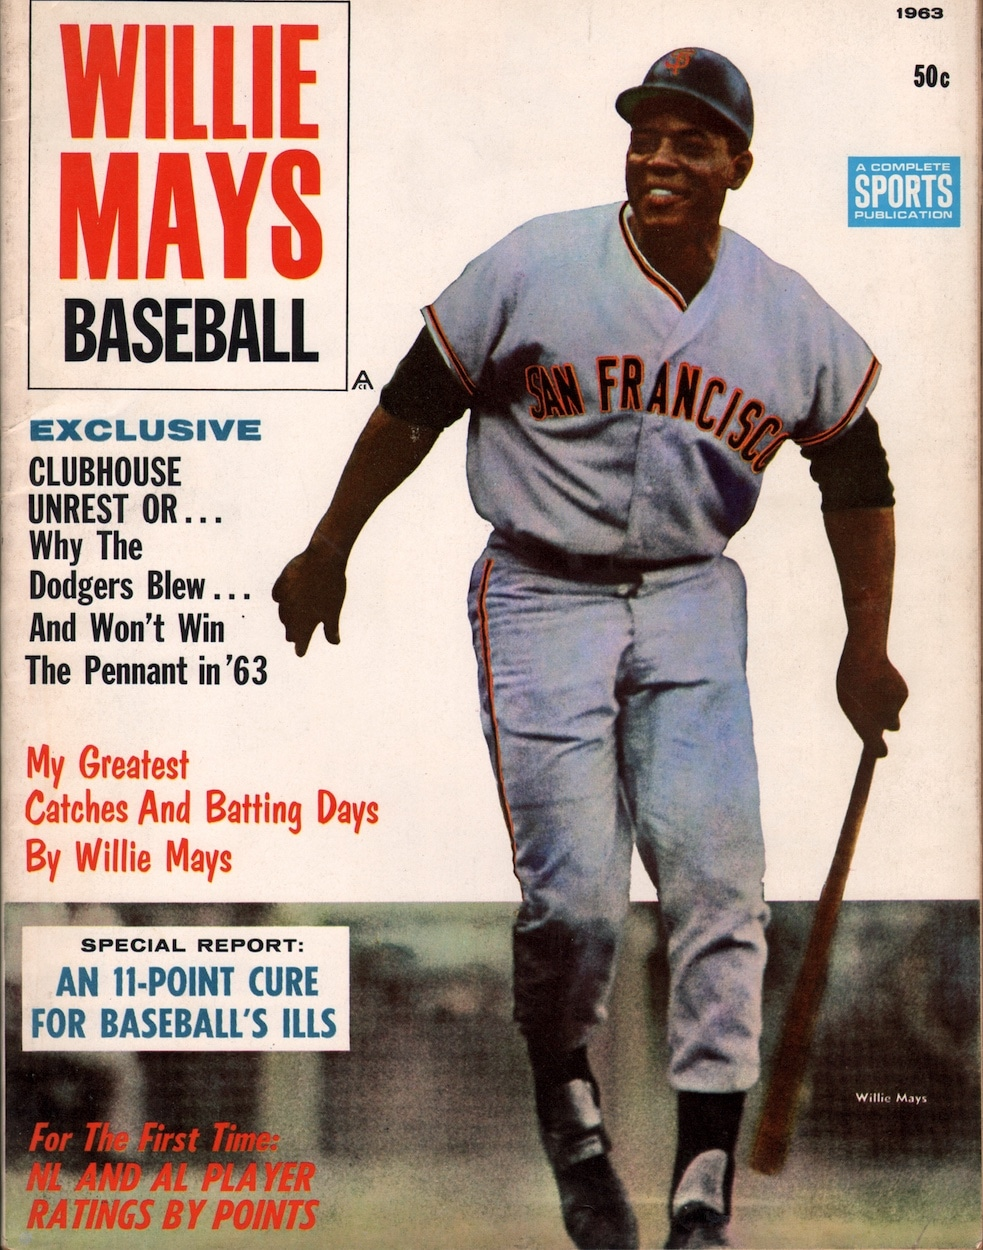 Willie Mays Baseball